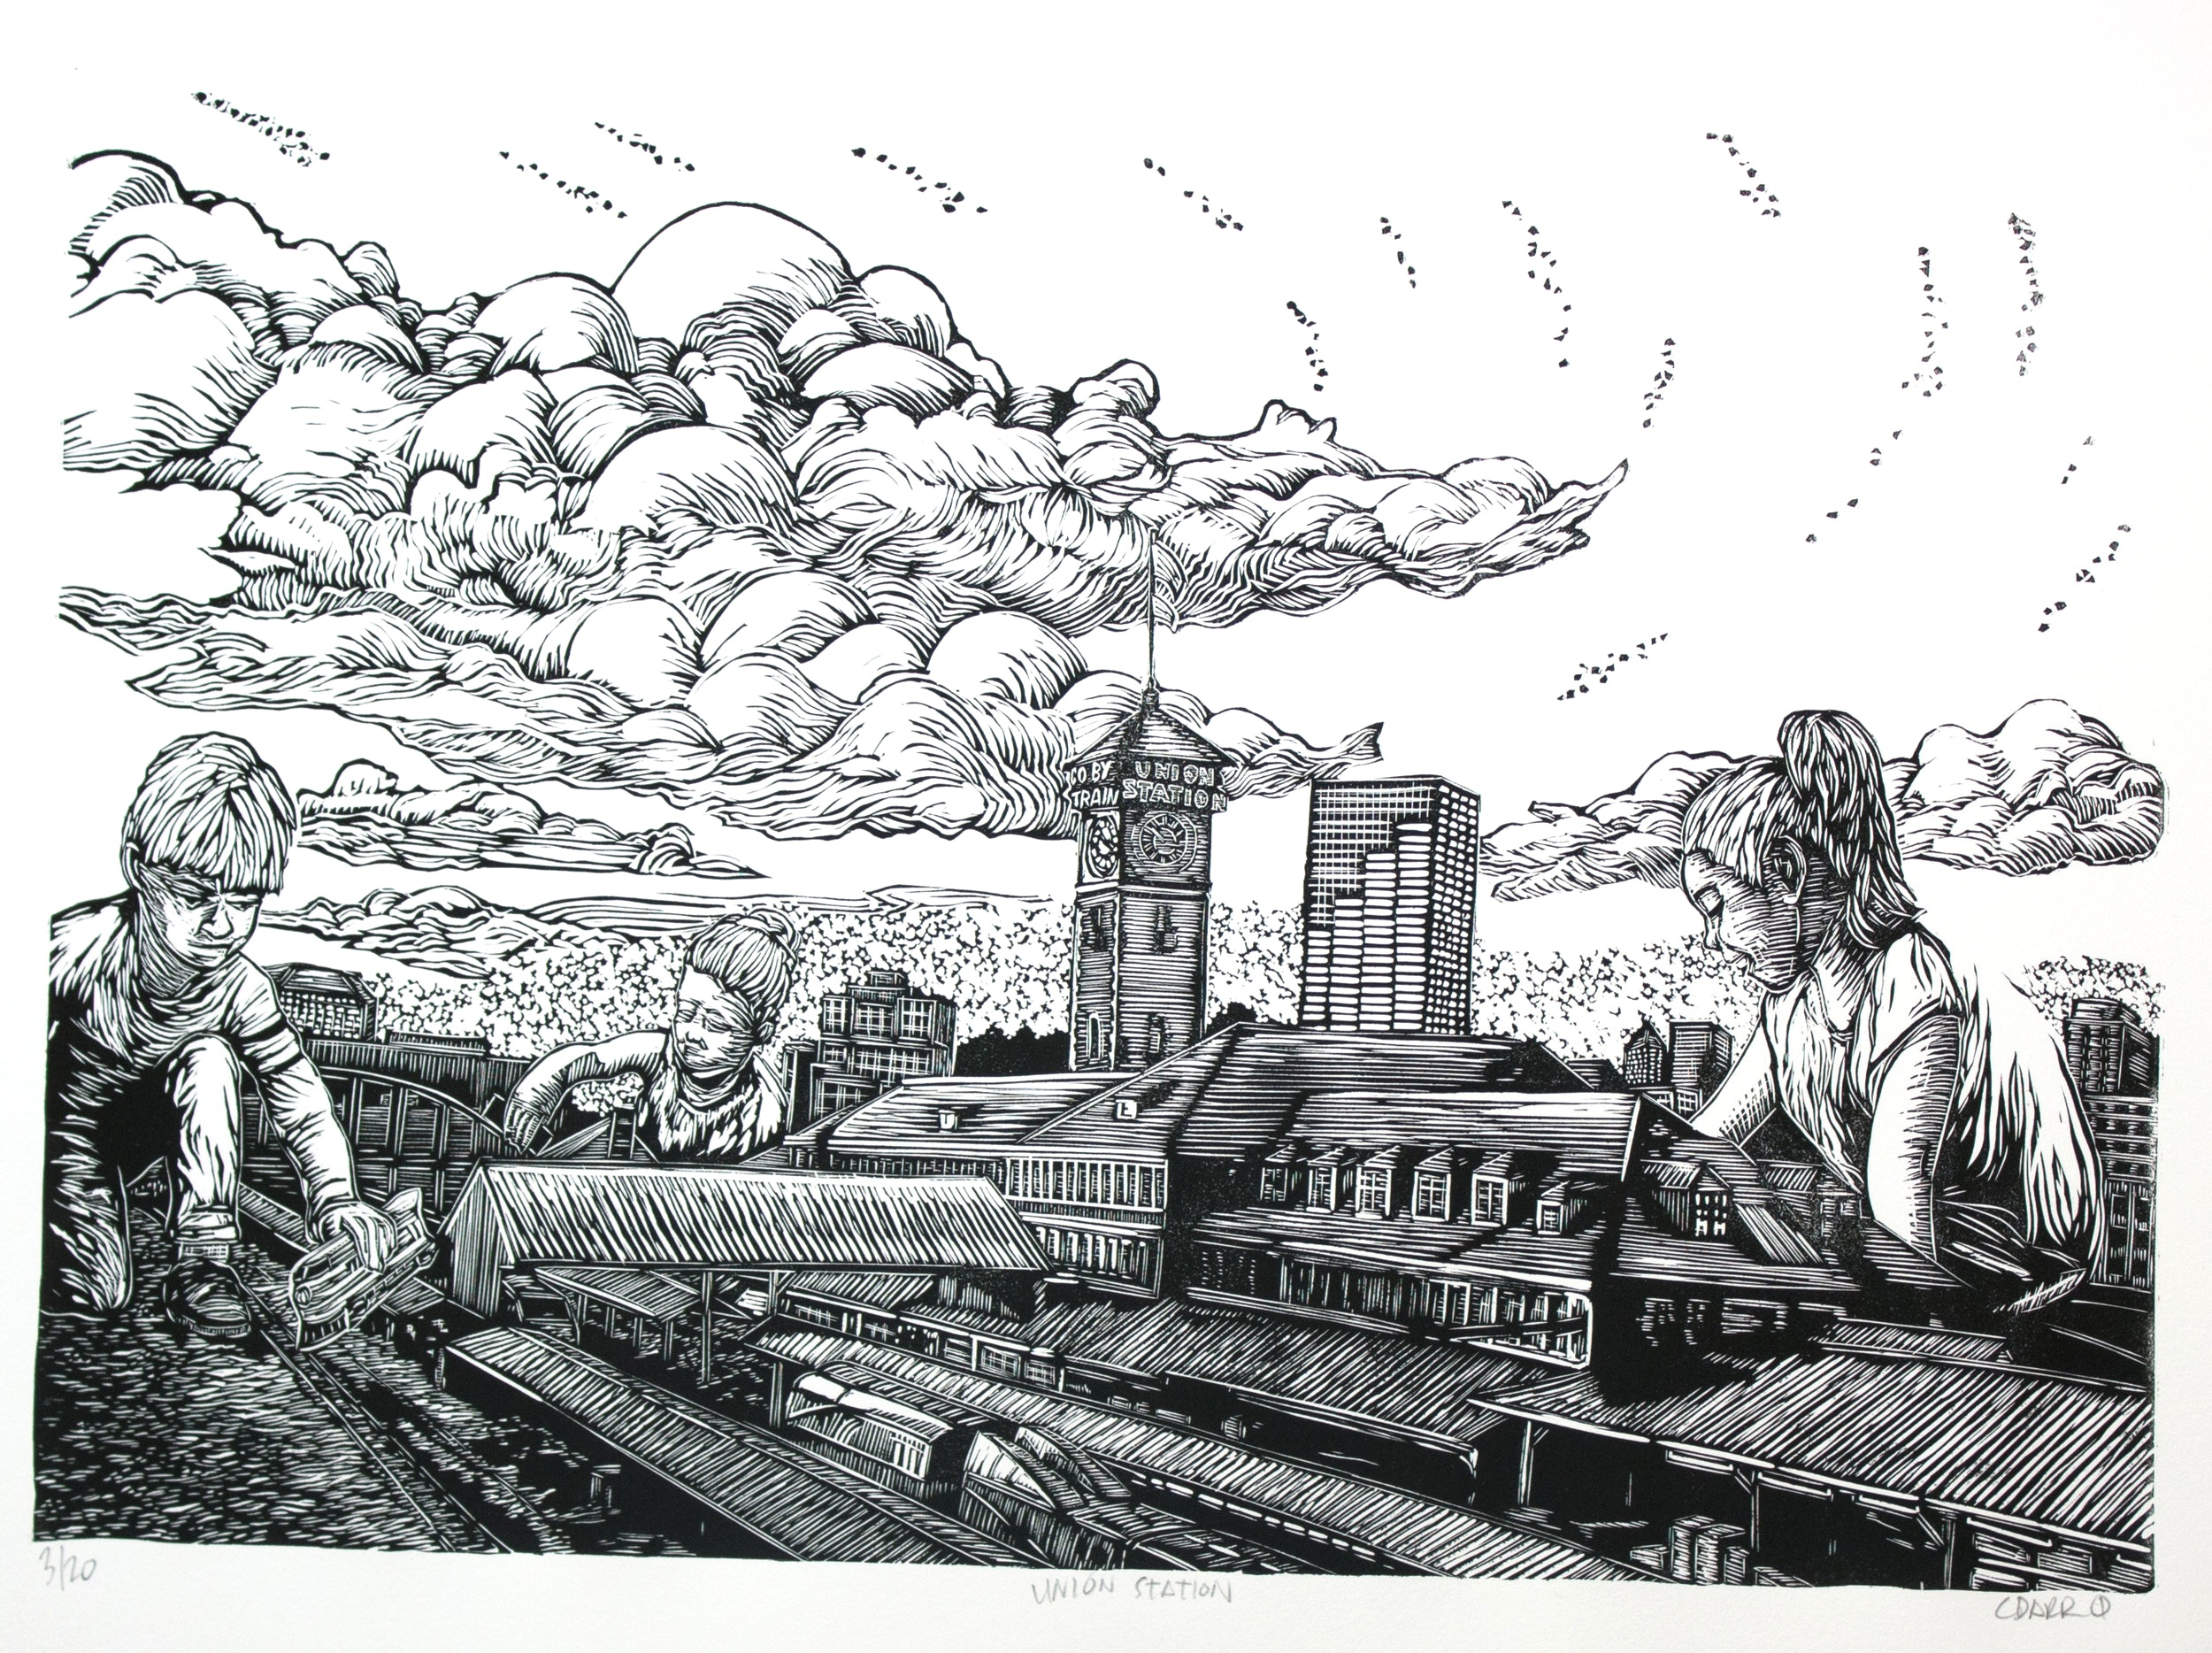 UNION STATION linocut print